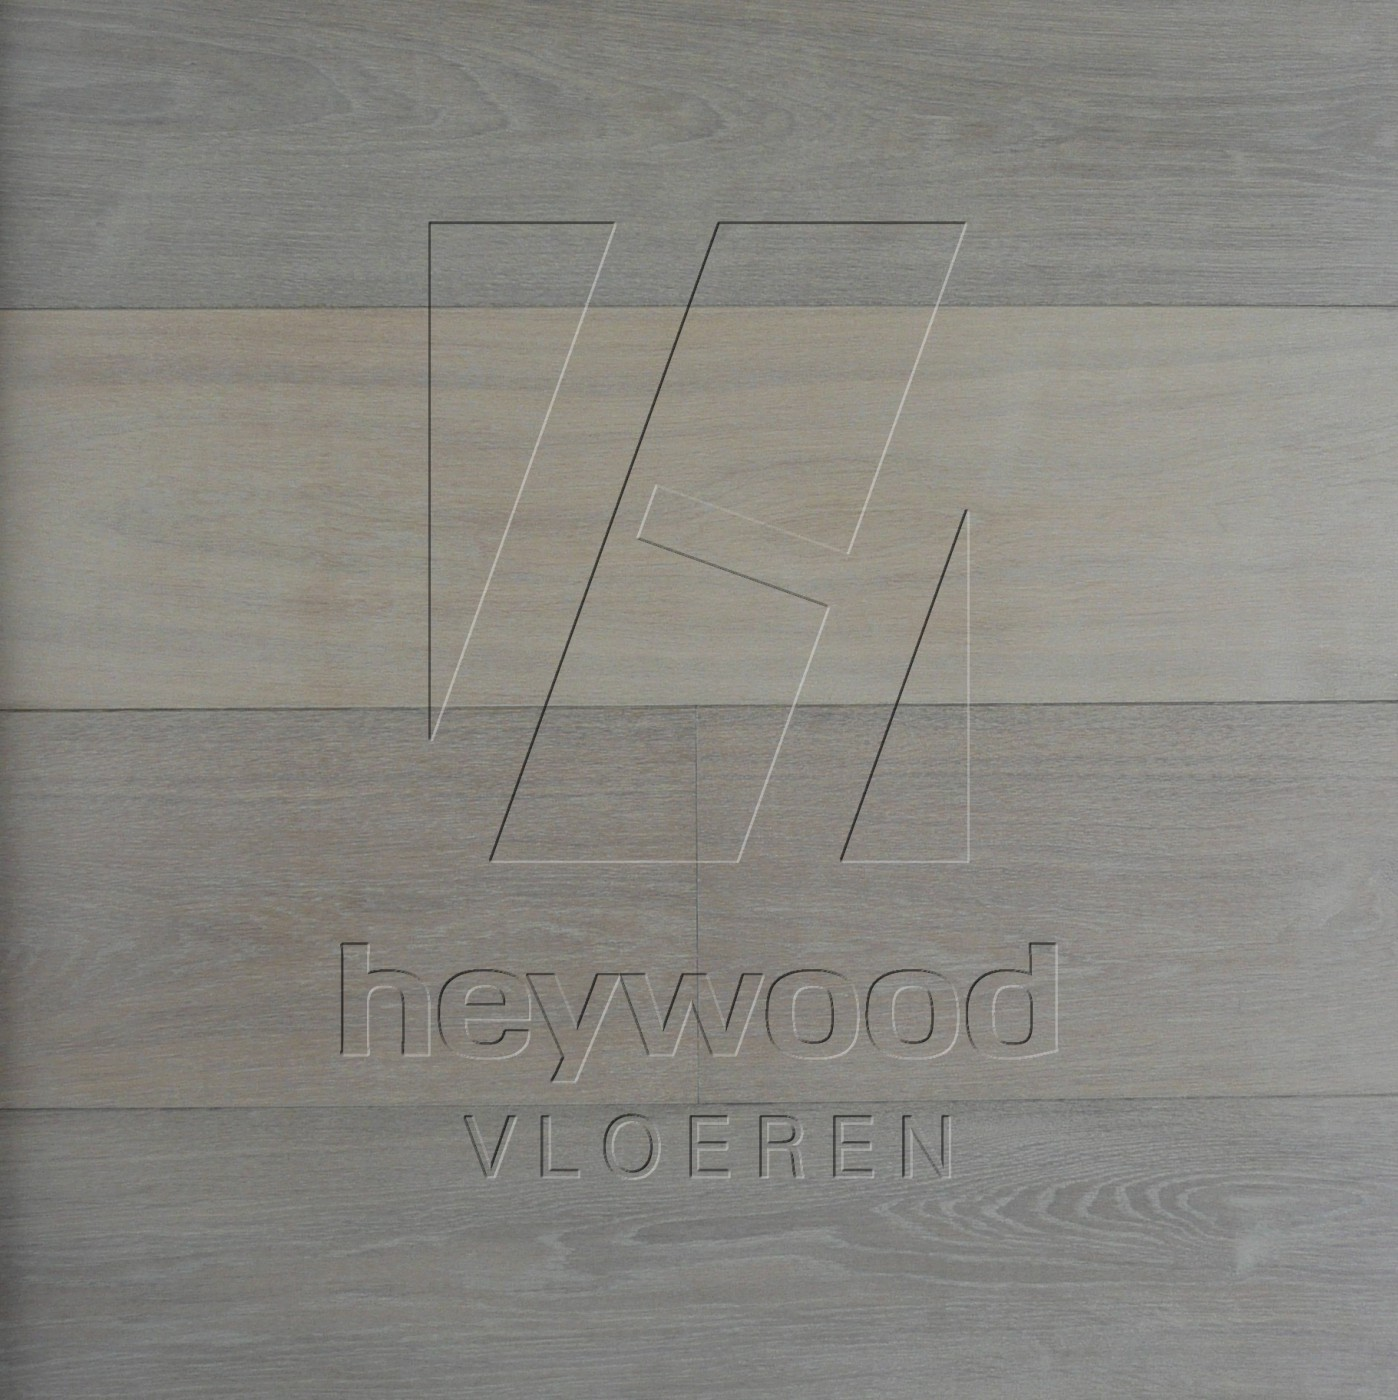 St. Lawrence in European Oak Elegance of Bespoke Wooden Floors